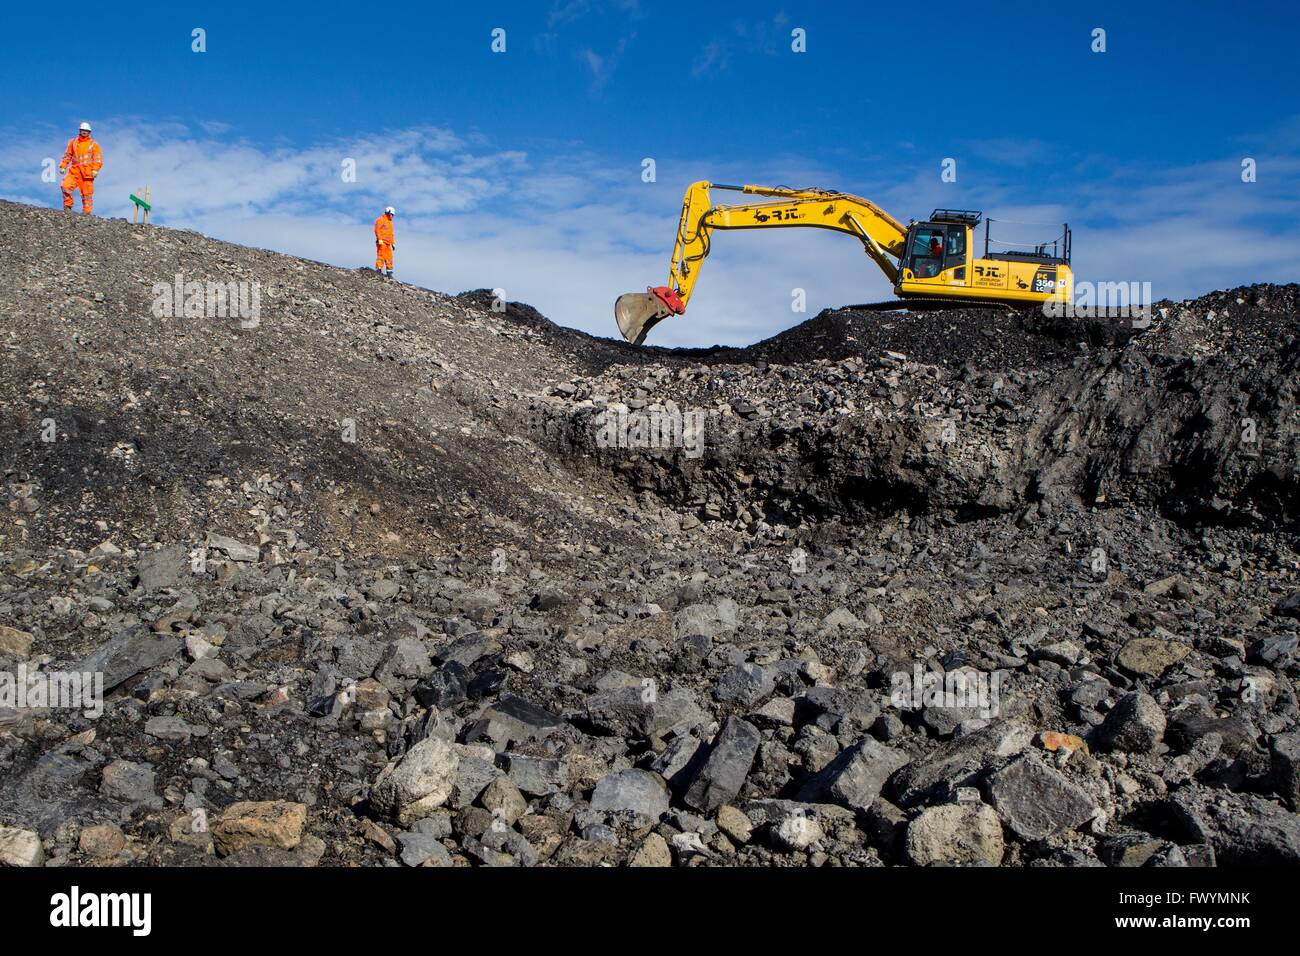 Borders Railway Construction showing diggers clearing rocks - Stock Image